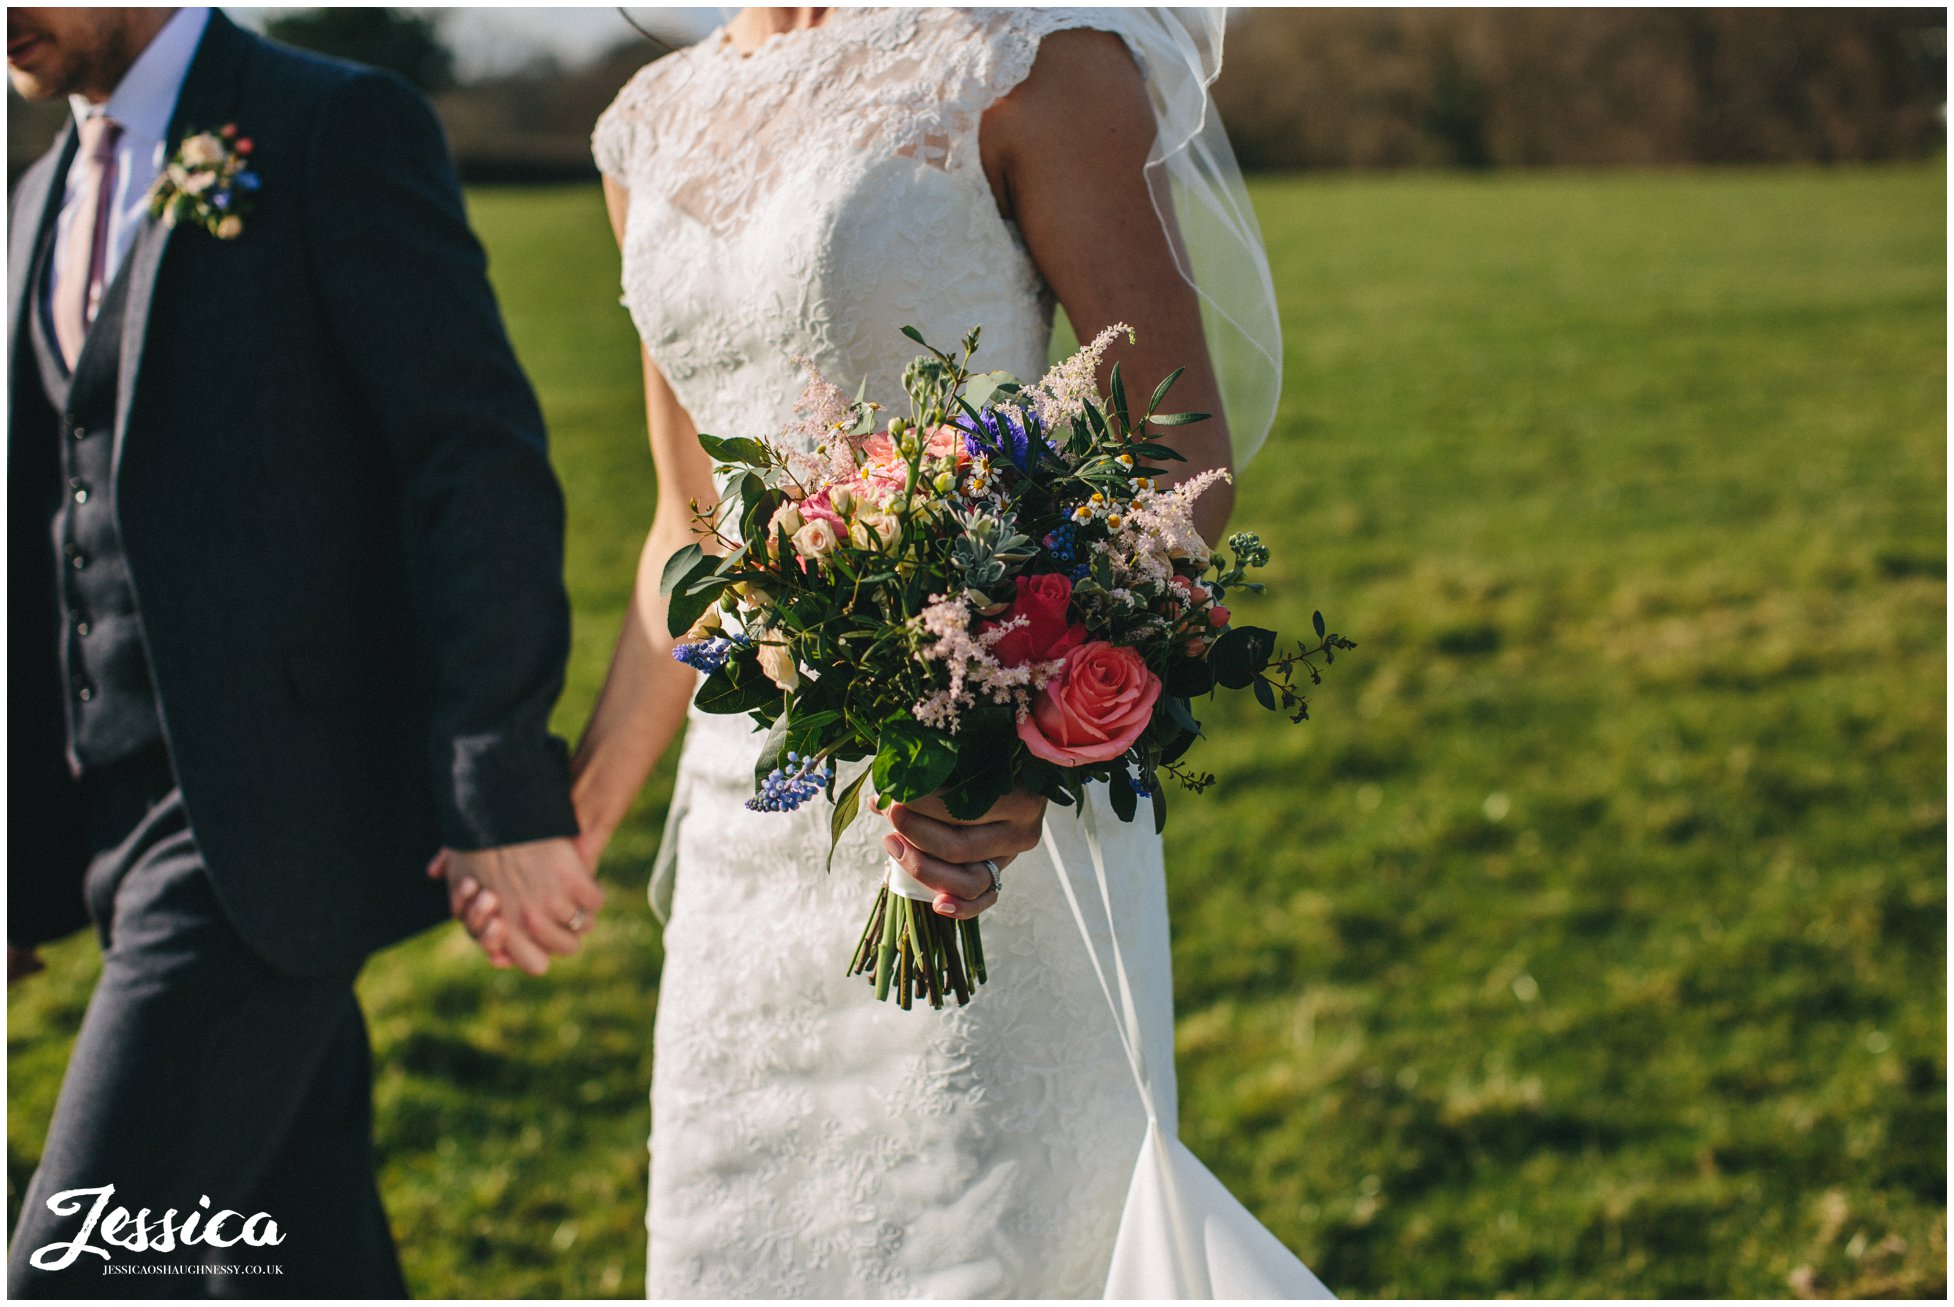 close up of bridal bouquet as she walks through a field with her husband - tower hill barns wedding photography